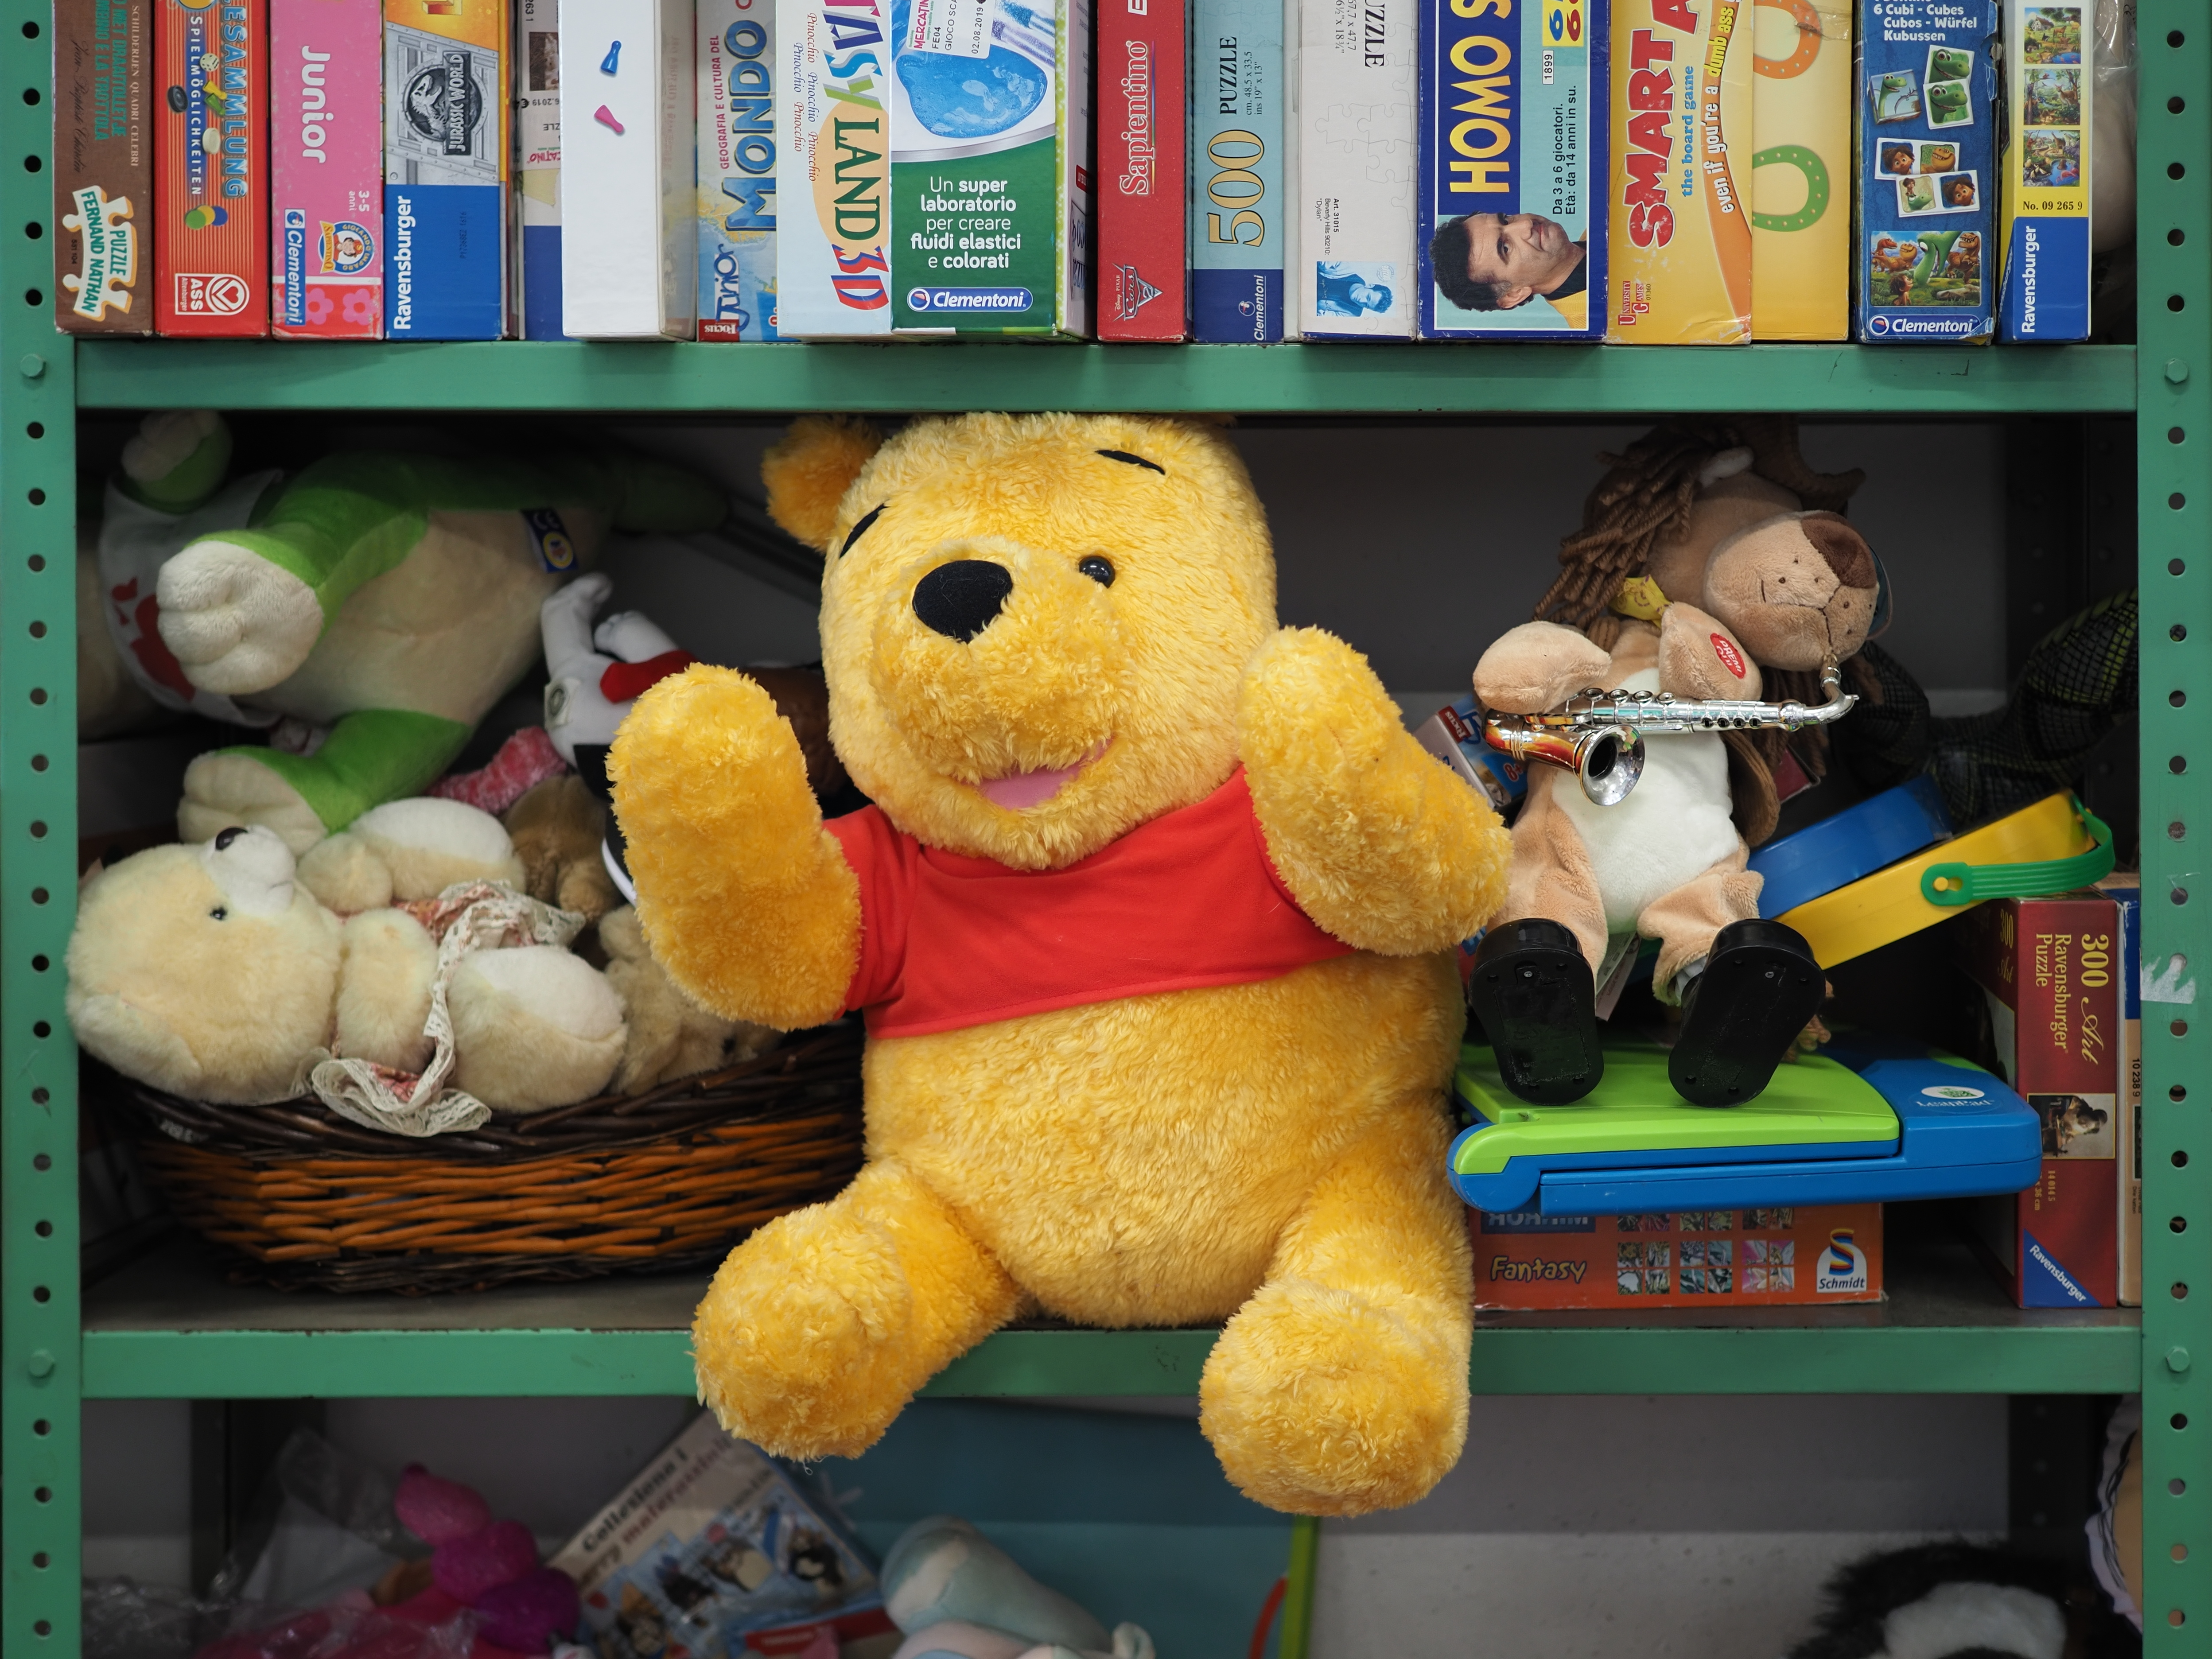 children's toys including a plush Winnie the Pooh on a shelf